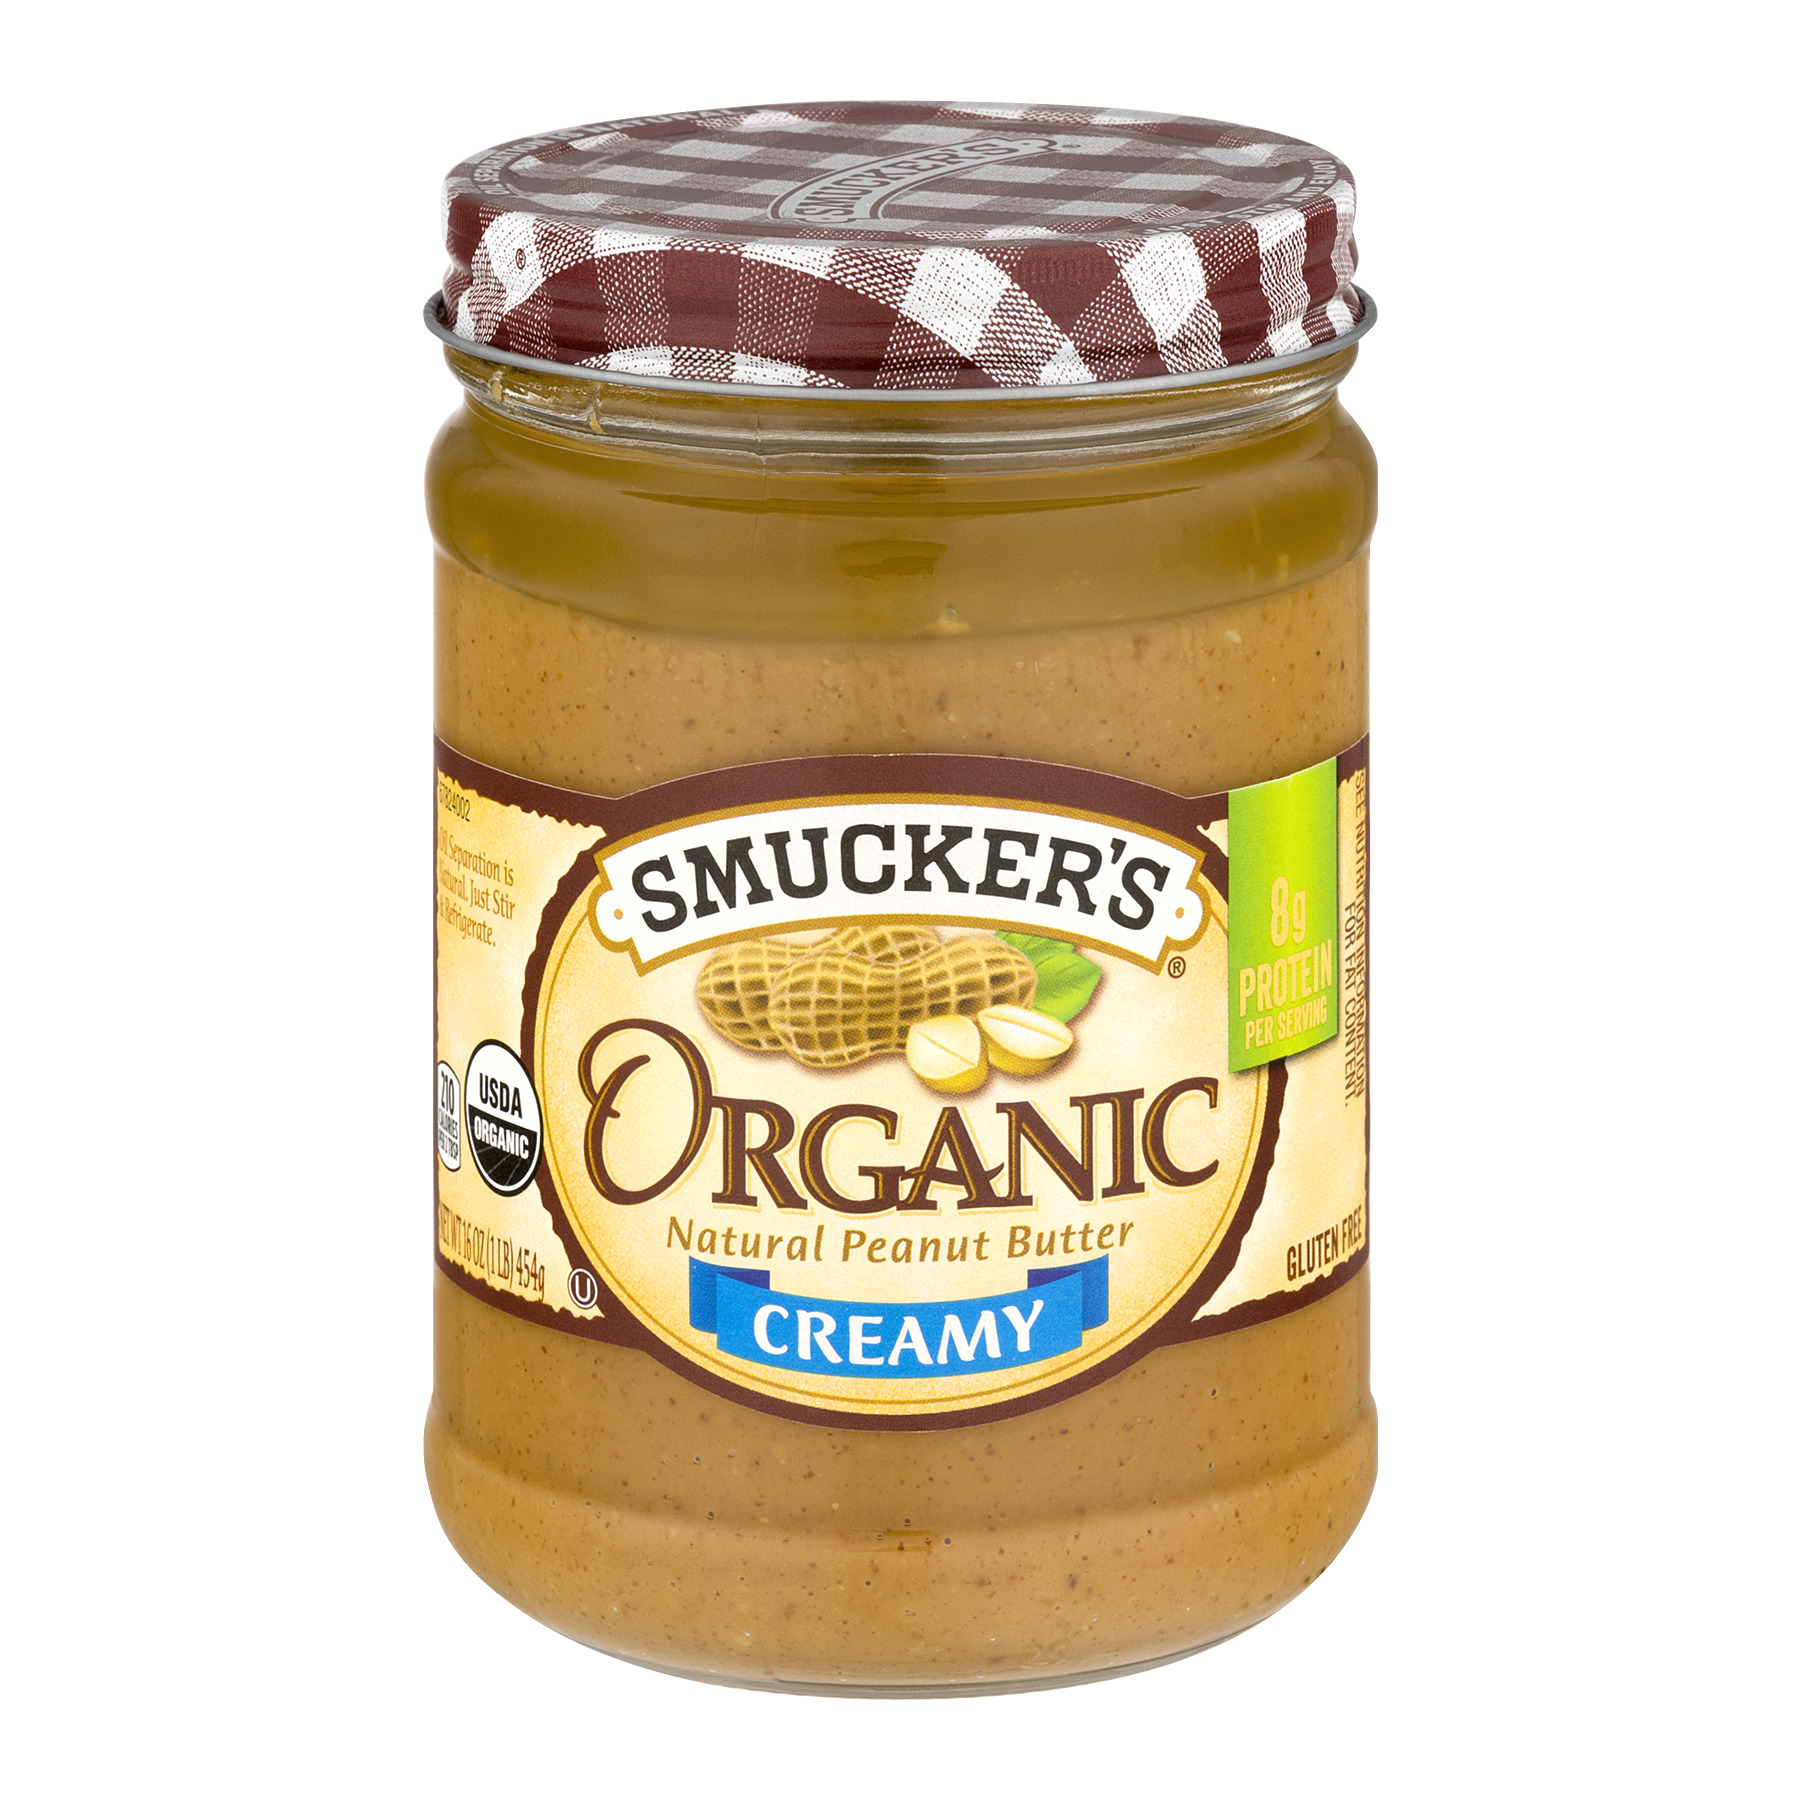 Smucker's Organic Creamy Natural Peanut Butter, 16 oz